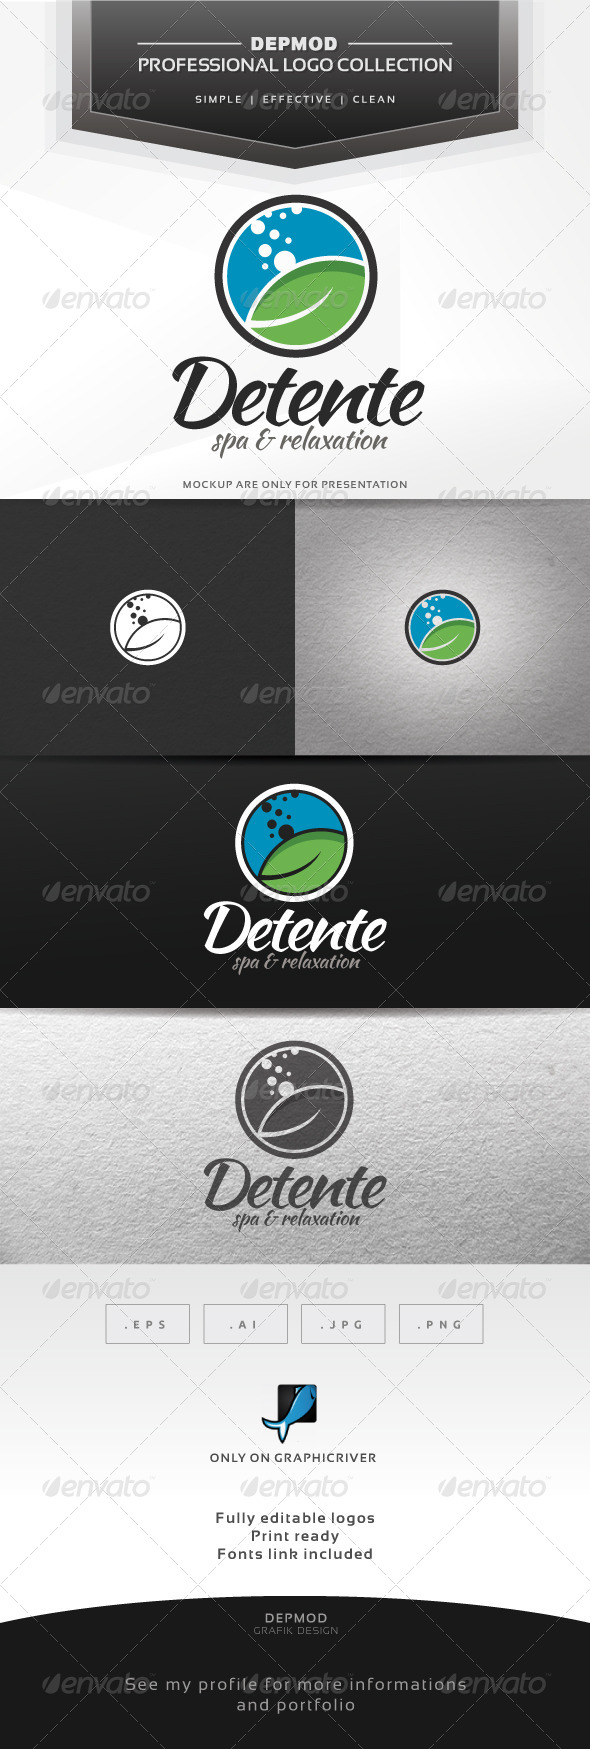 Detente Logo - Nature Logo Templates